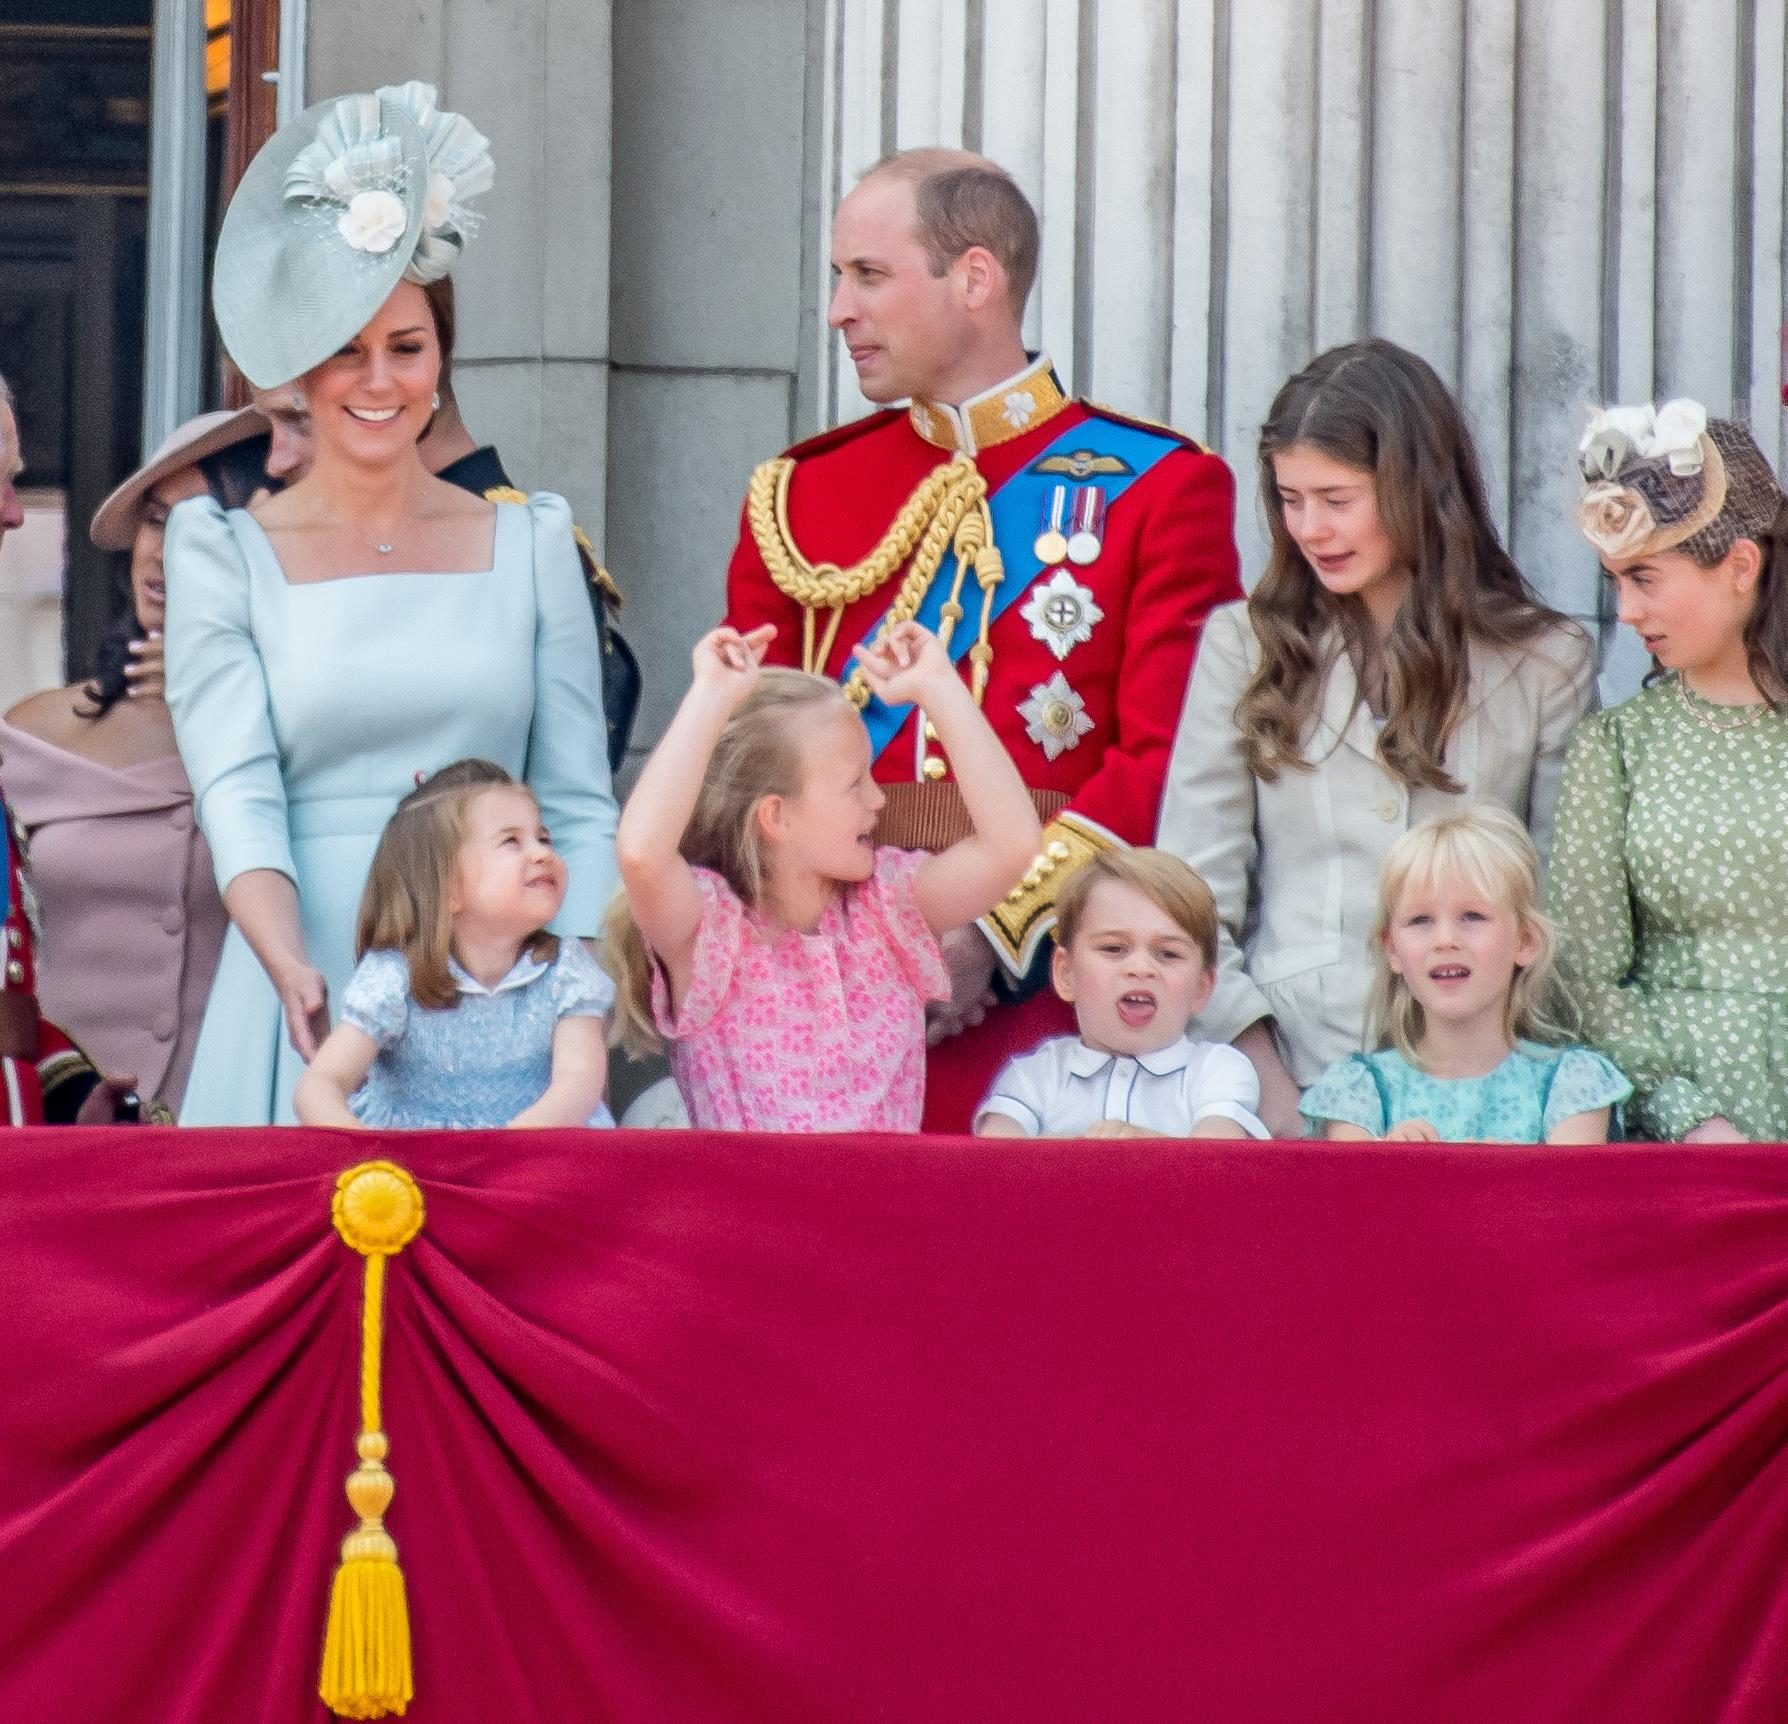 Prince William Duke of Cambridge, Catherine Duchess of Cambridge, Prince George, Princess Charlotte and Savannah Philips as the children steal the show during Trooping the Colour ceremony, marking the monarch's official birthday, in London. (Photo by DPPA/Sipa USA)